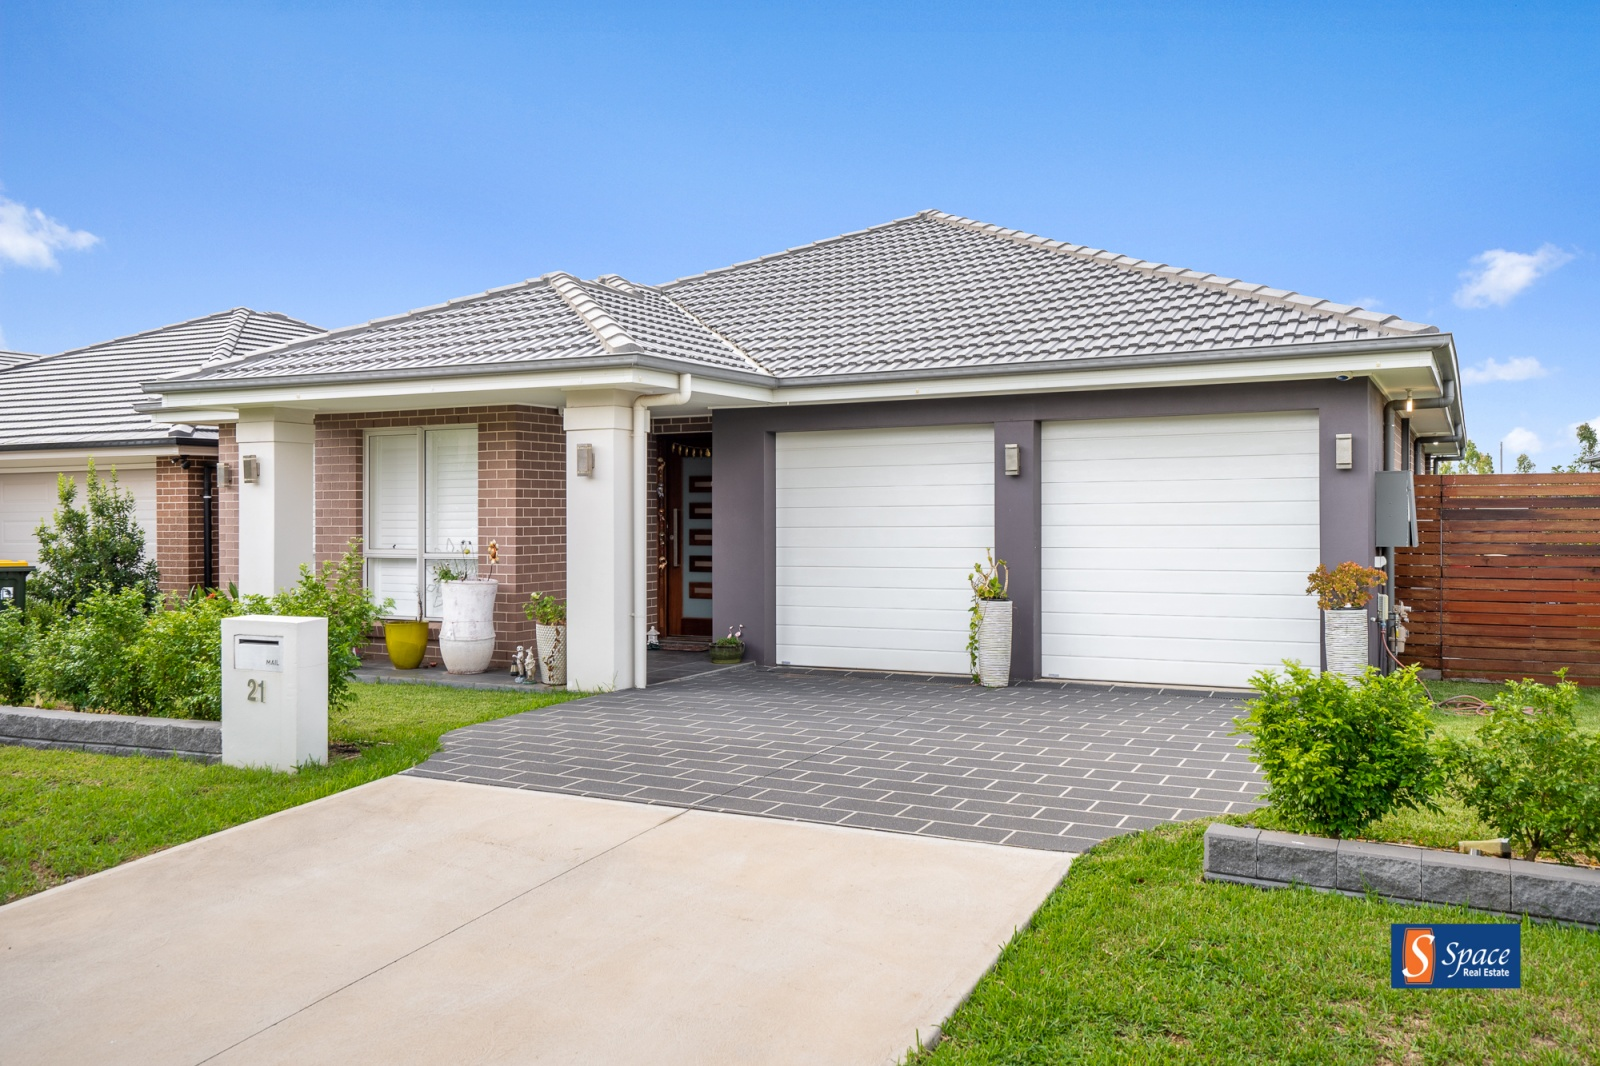 21 Tess Circuit, Oran Park, NSW, 4 Bedrooms Bedrooms, ,2 BathroomsBathrooms,House,Leased,Tess Circuit,1598